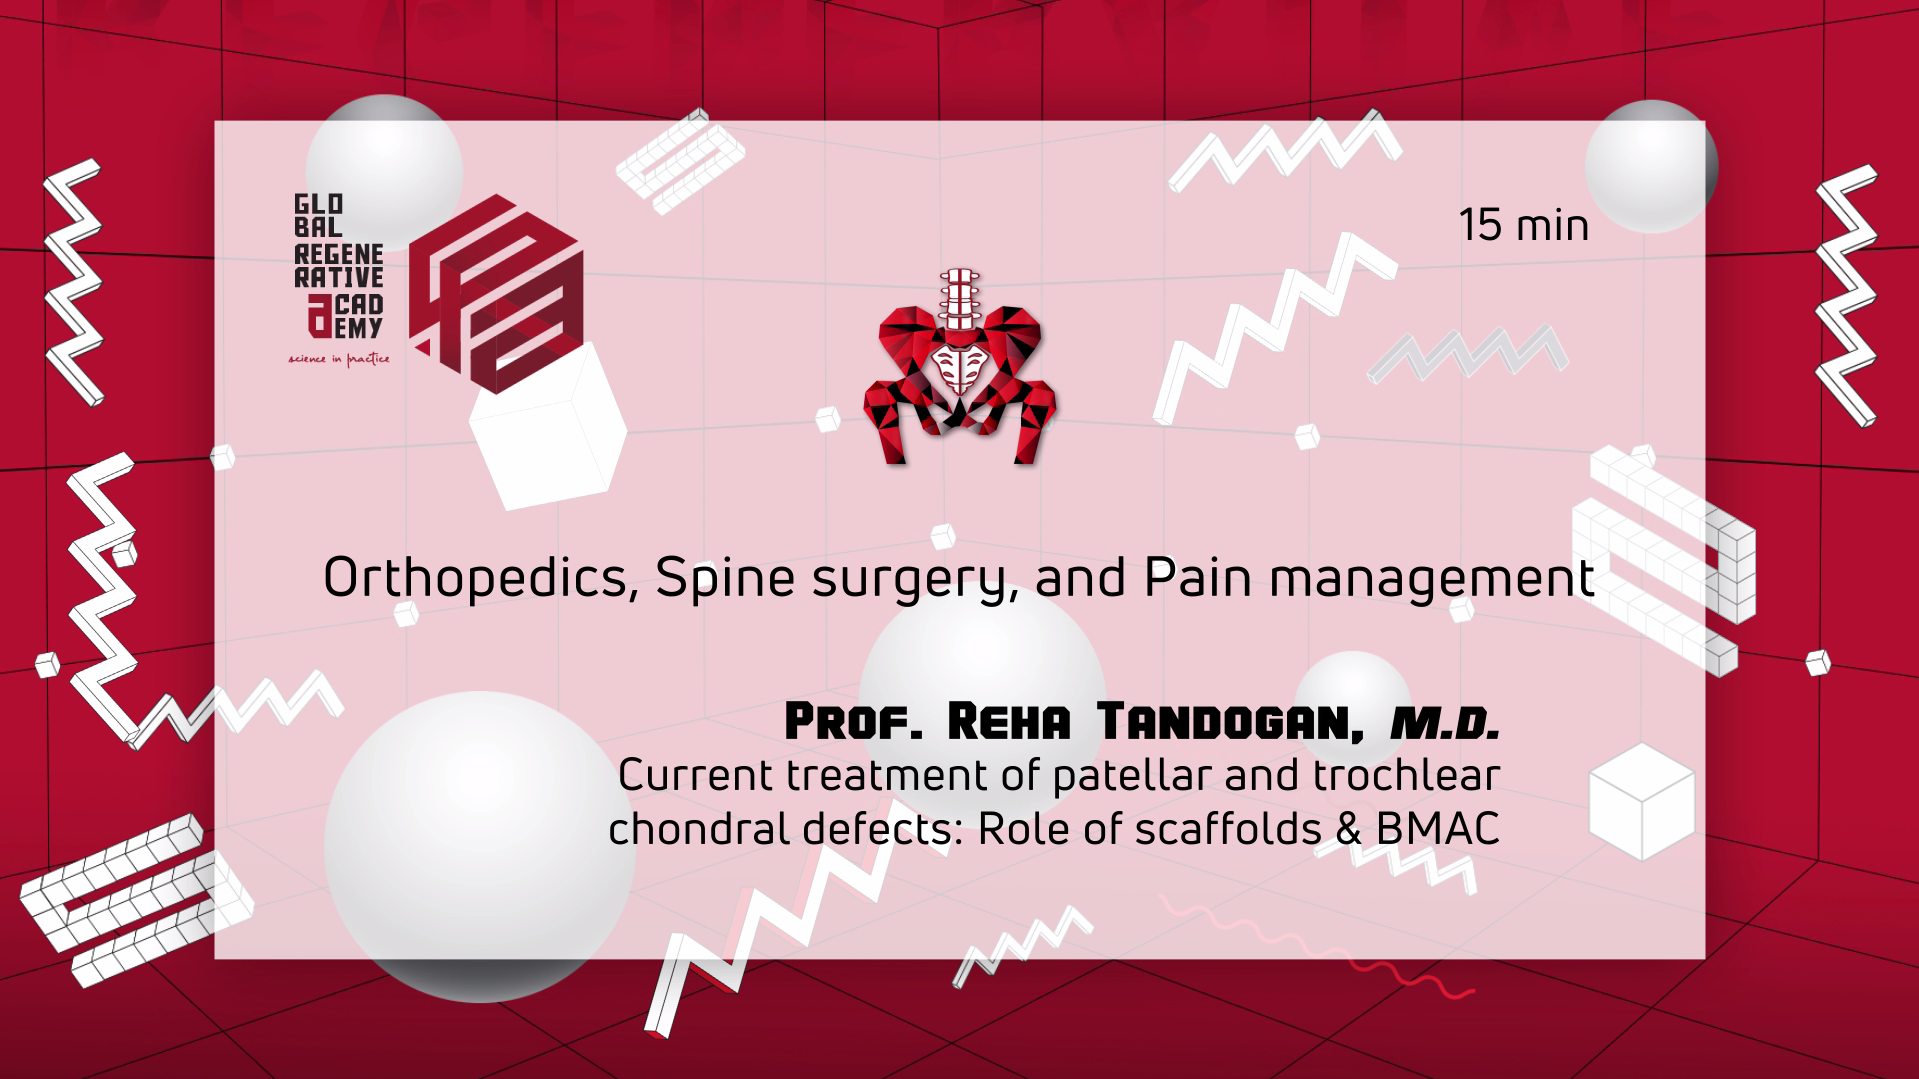 Prof. M.D. Reha Tandogan – Current treatment of patellar and trochlear chondral defects: Role of scaffolds & BMAC